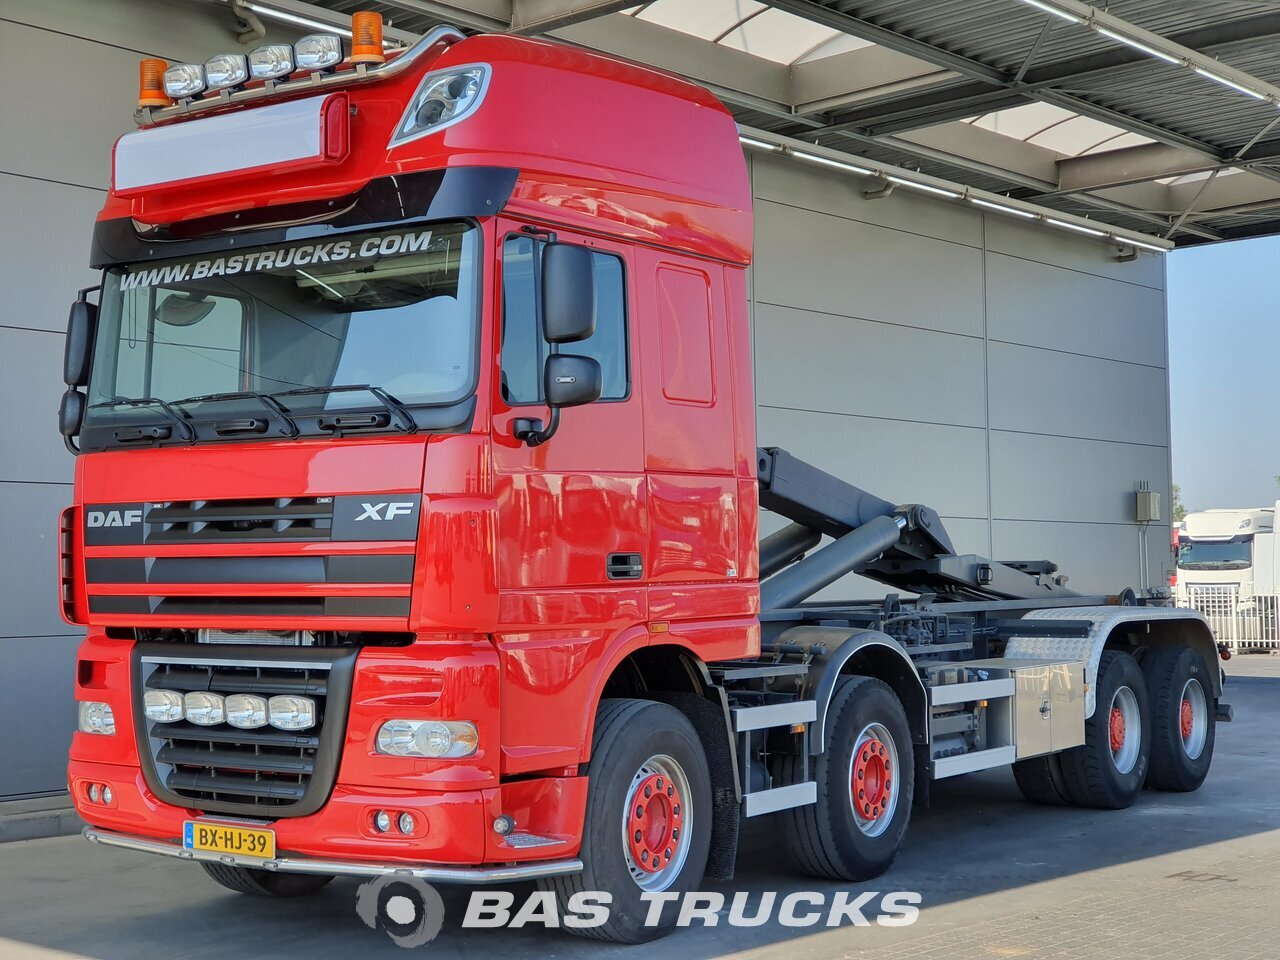 For sale at BAS Trucks: DAF XF105 510 8X4 01/2010